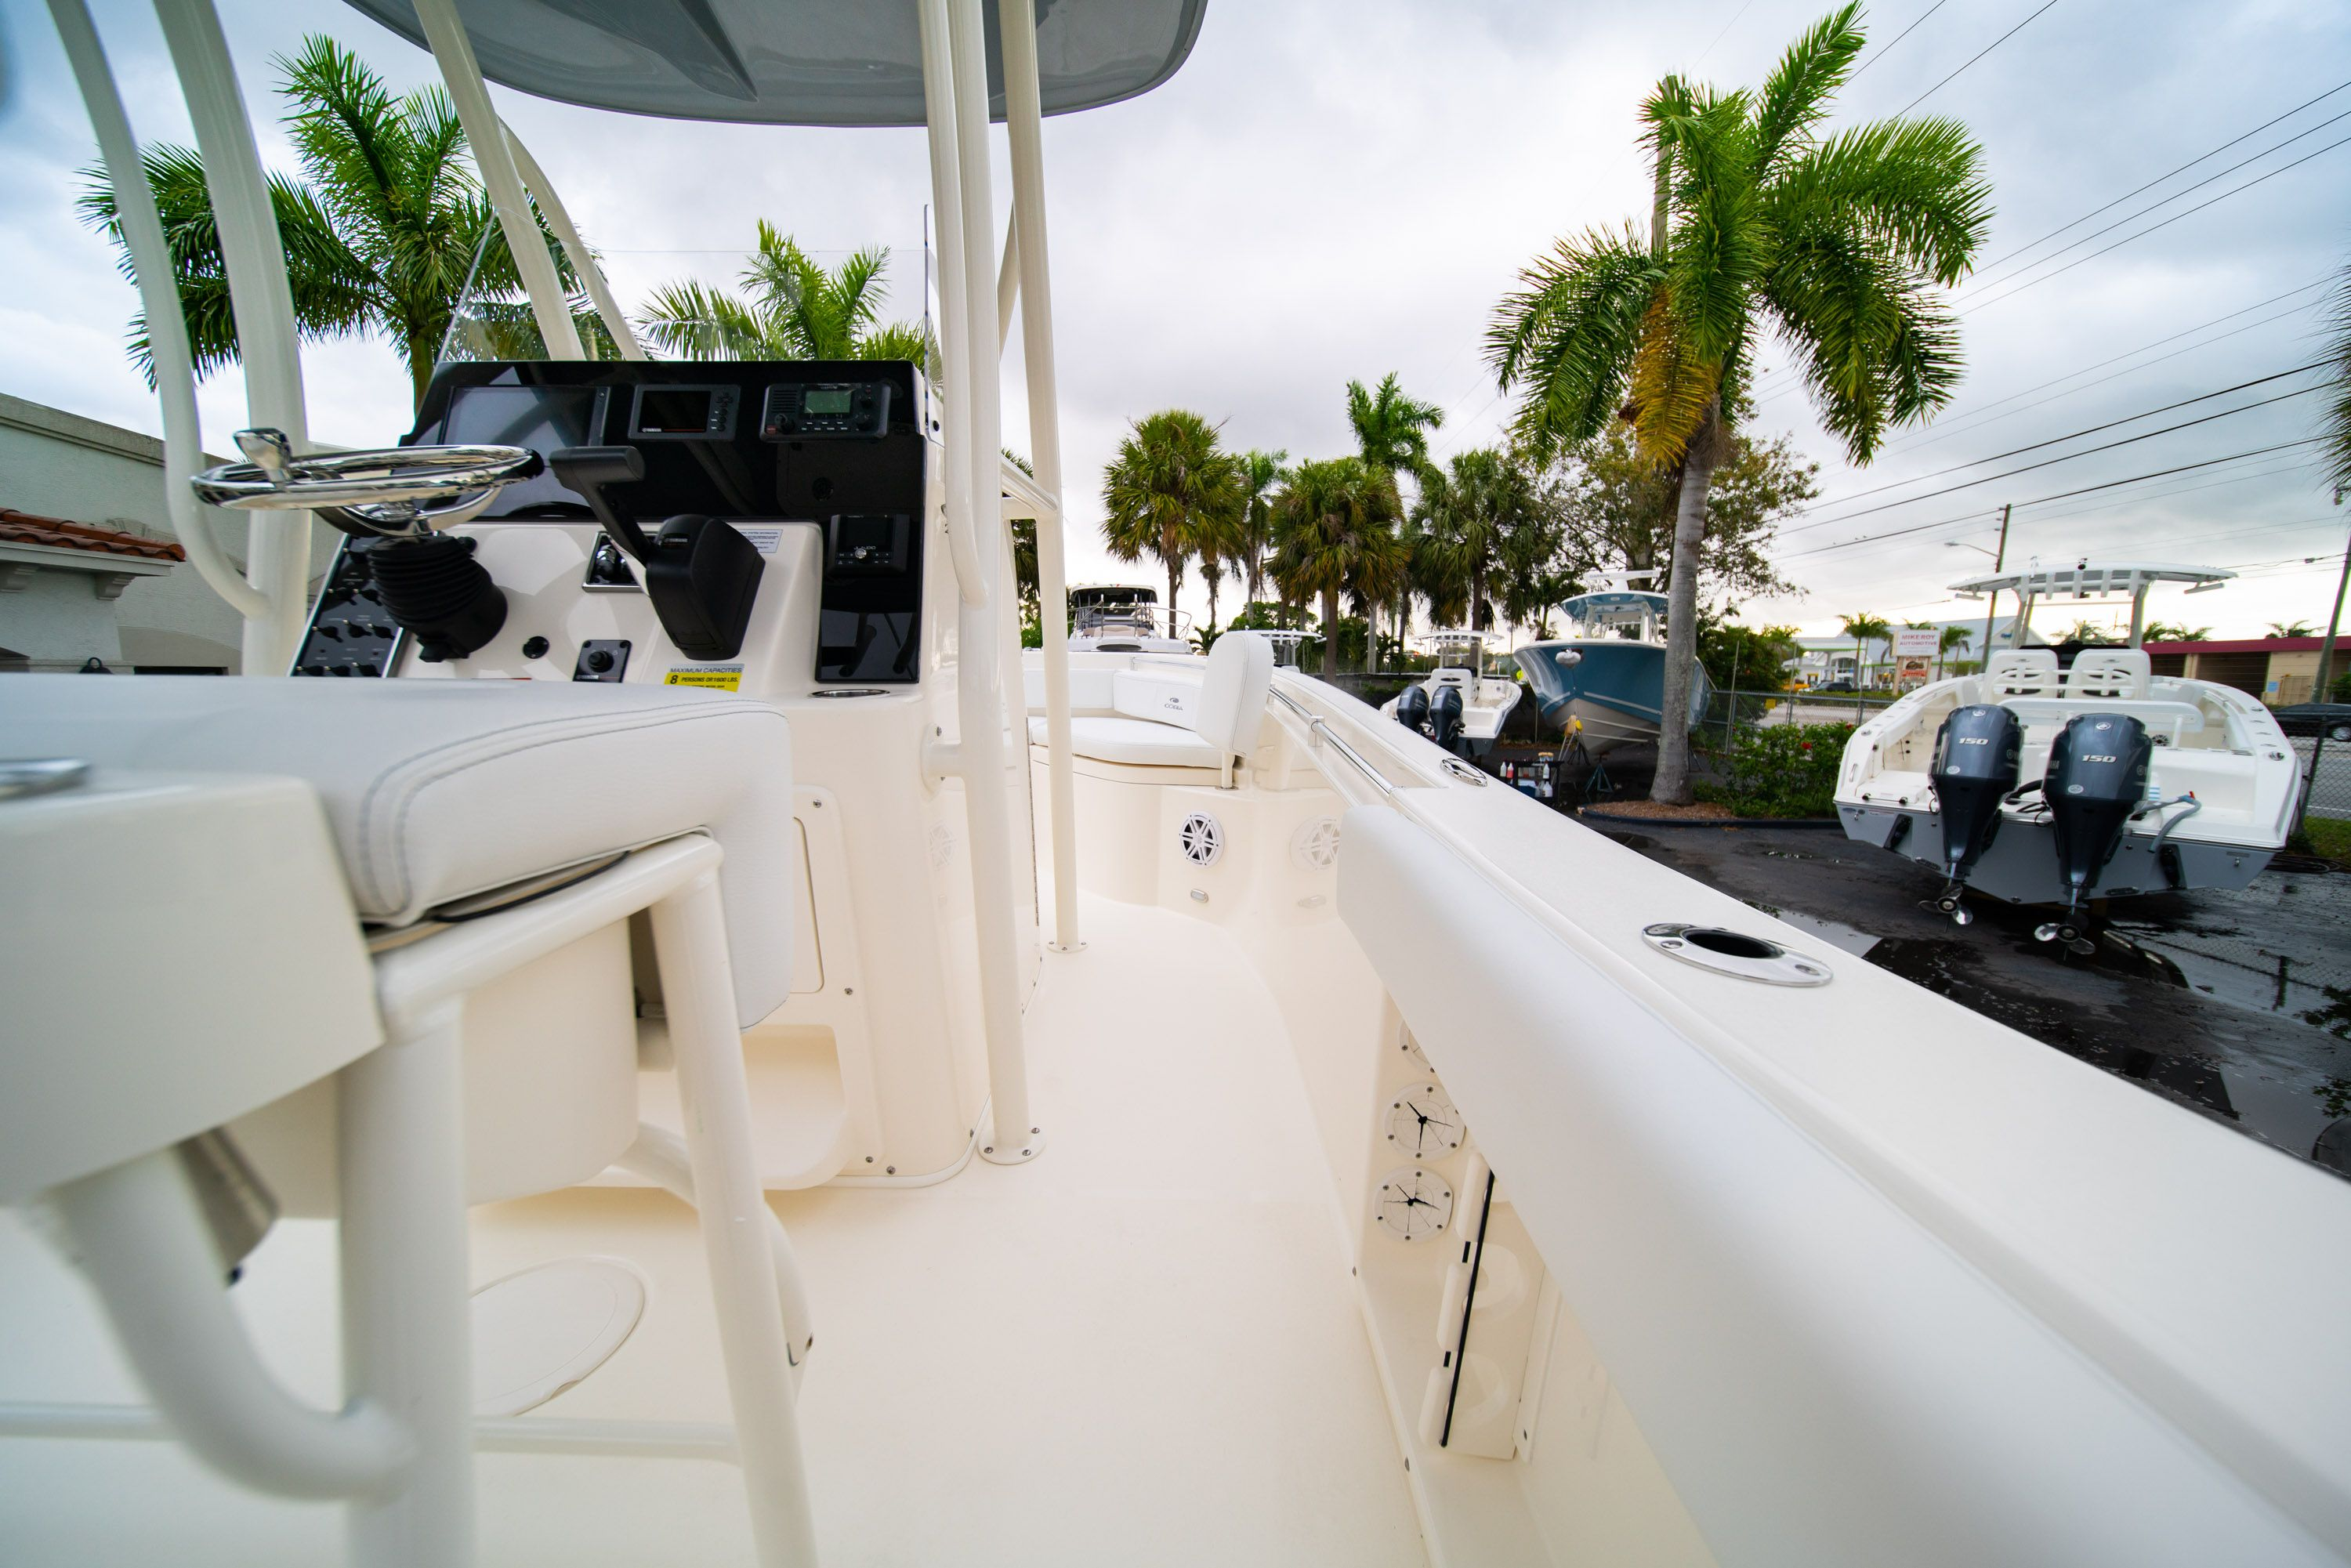 Thumbnail 15 for New 2020 Cobia 201 CC Center Console boat for sale in West Palm Beach, FL